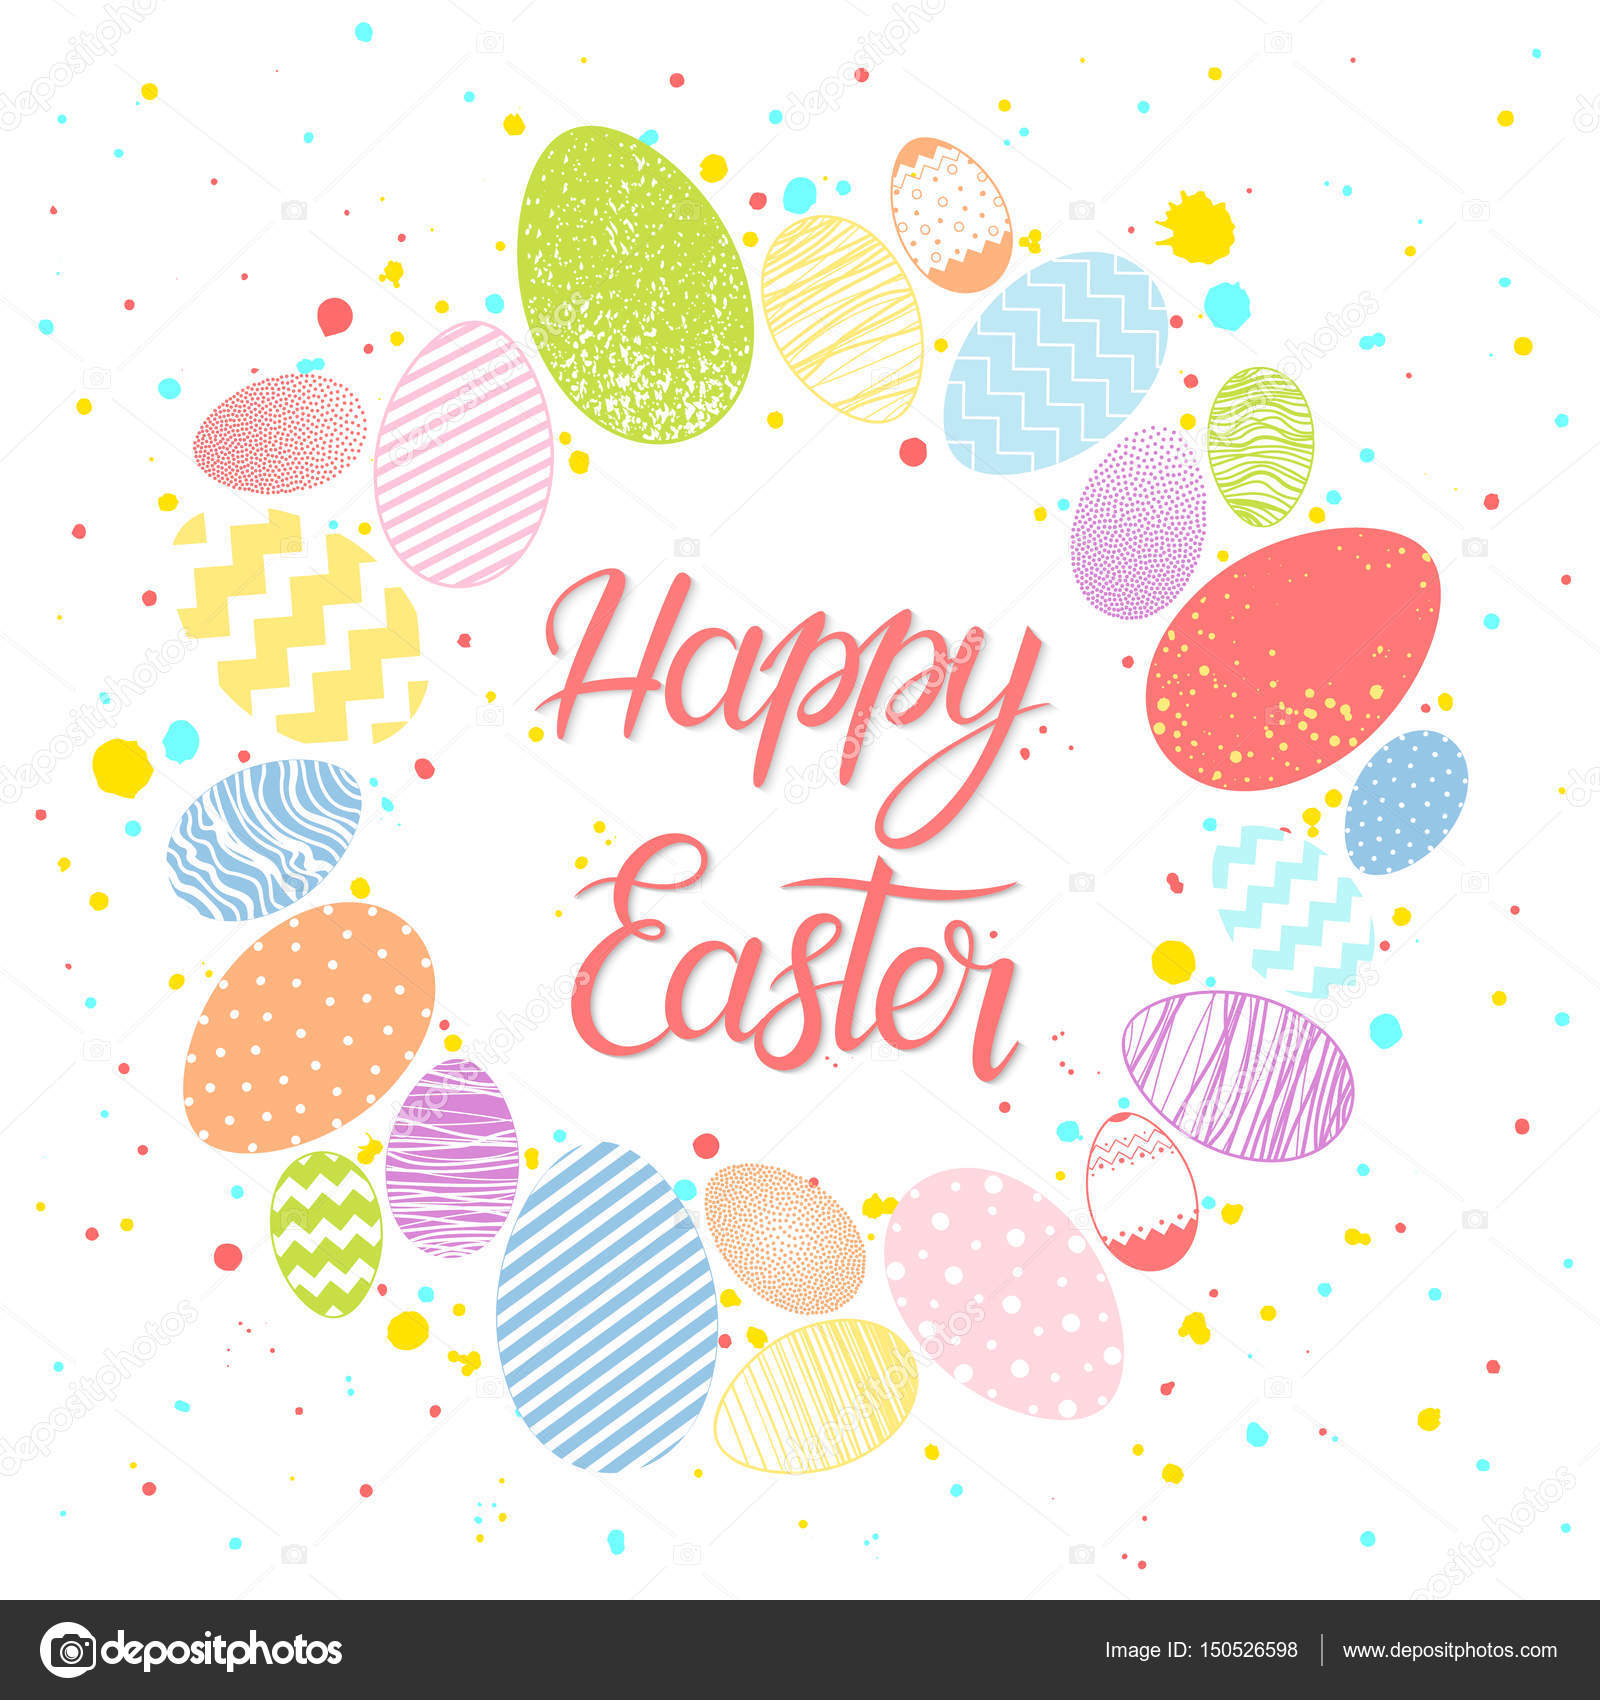 Easter seasons greetings card stock vector xeniaartwork 150526598 easter seasons greetings card stock vector m4hsunfo